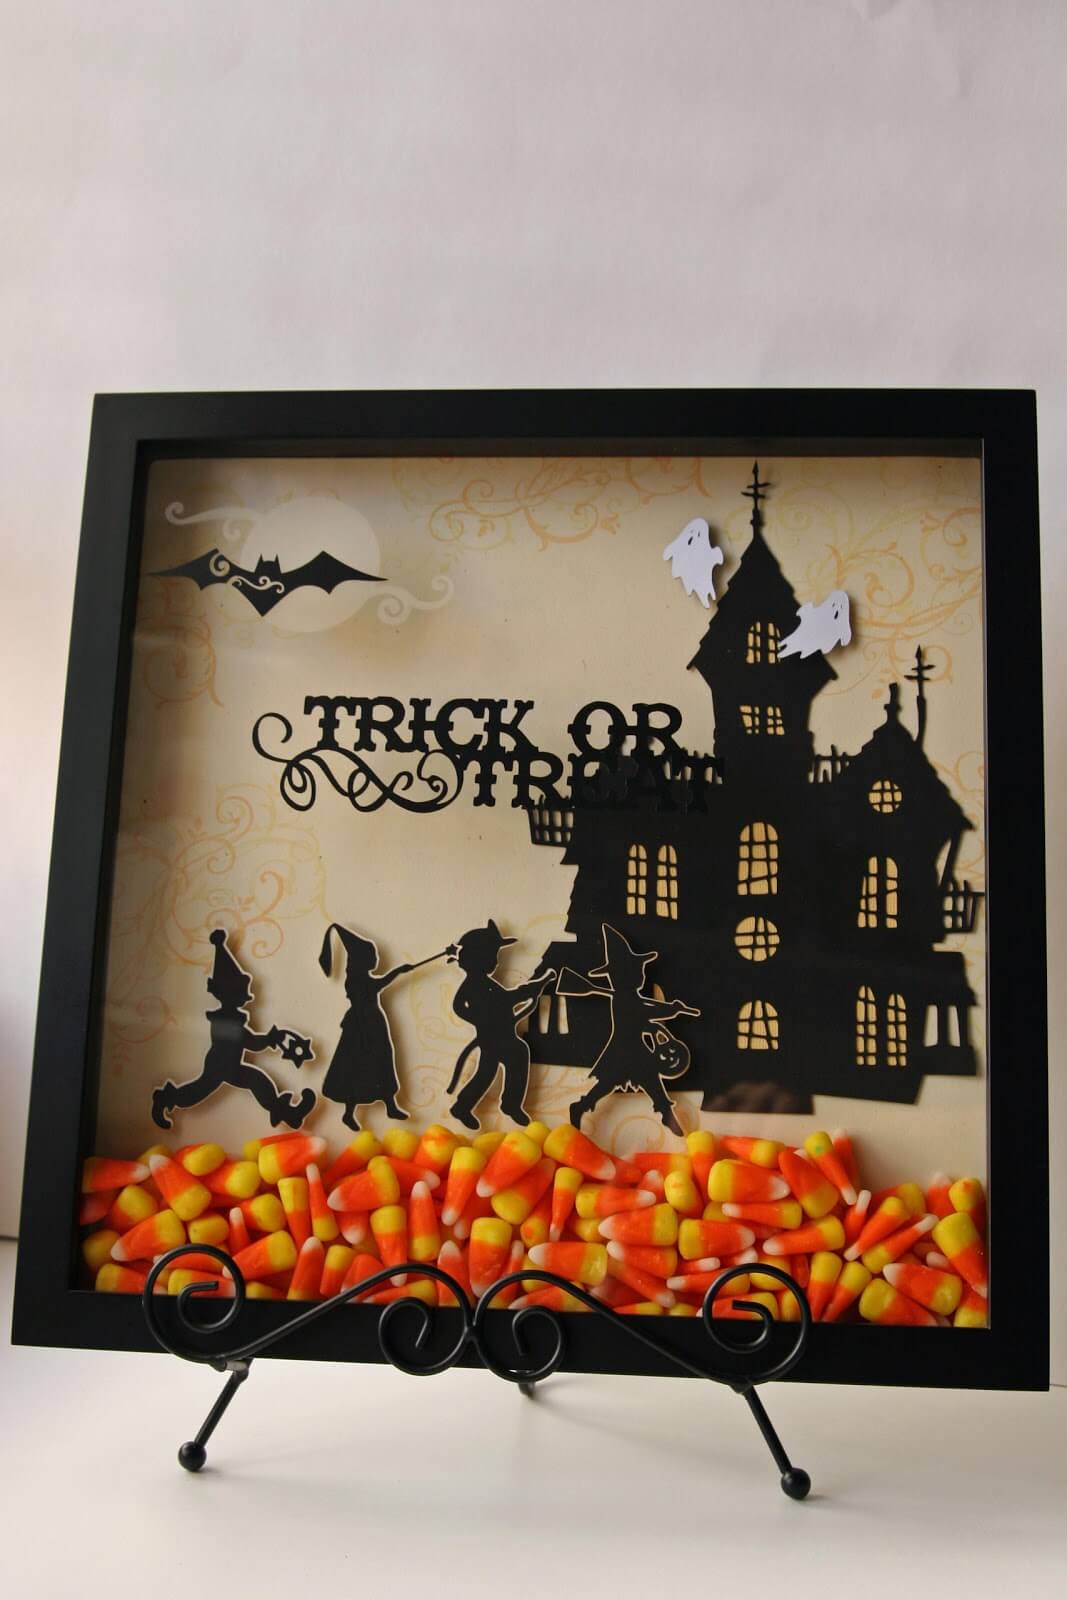 Candy Corn Makes Season Shadow Box Sweet | DIY Indoor Halloween Decorating Ideas